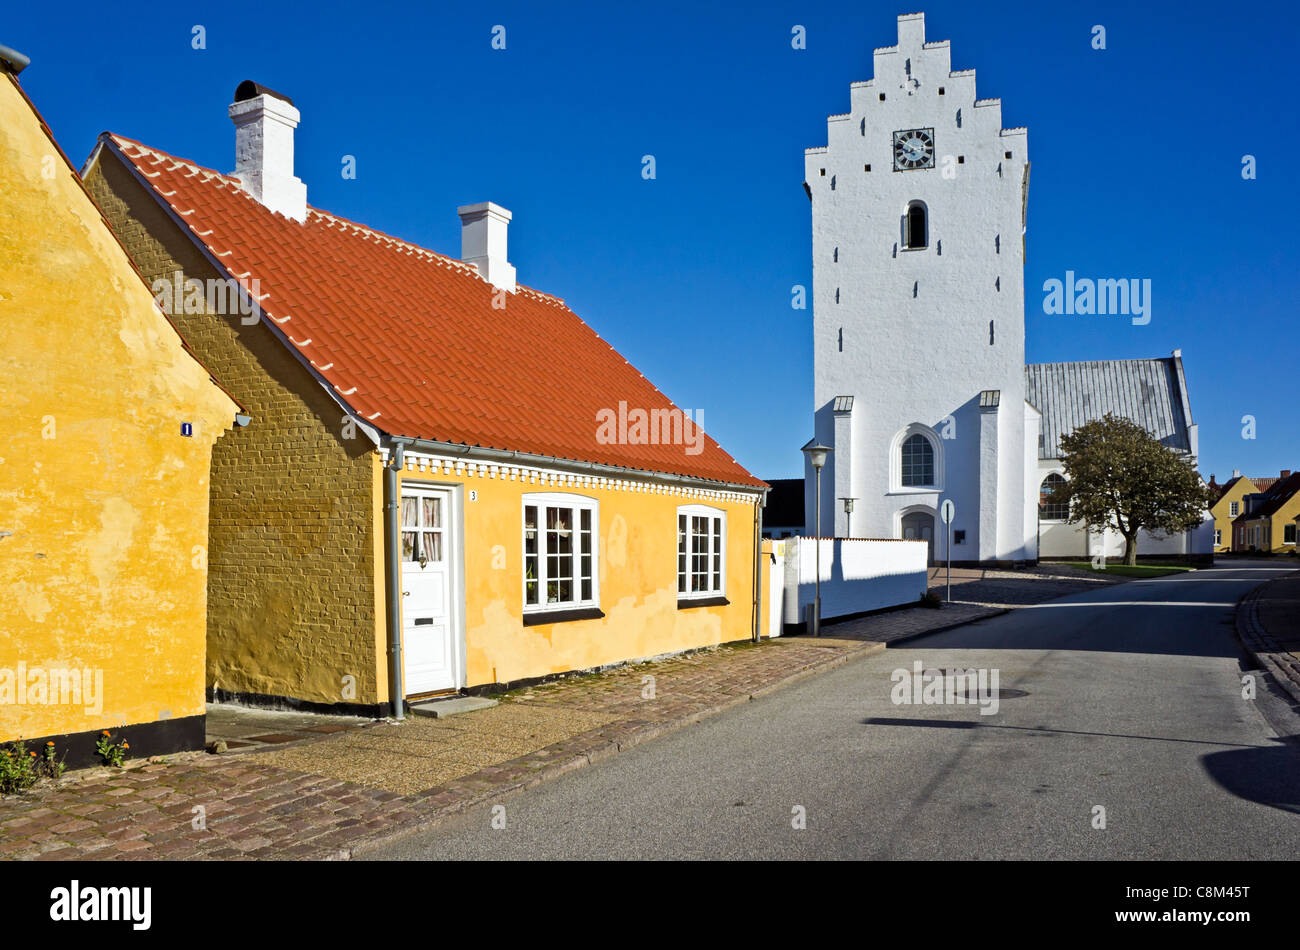 Strandgade Stock Photos & Strandgade Stock Images - Alamy